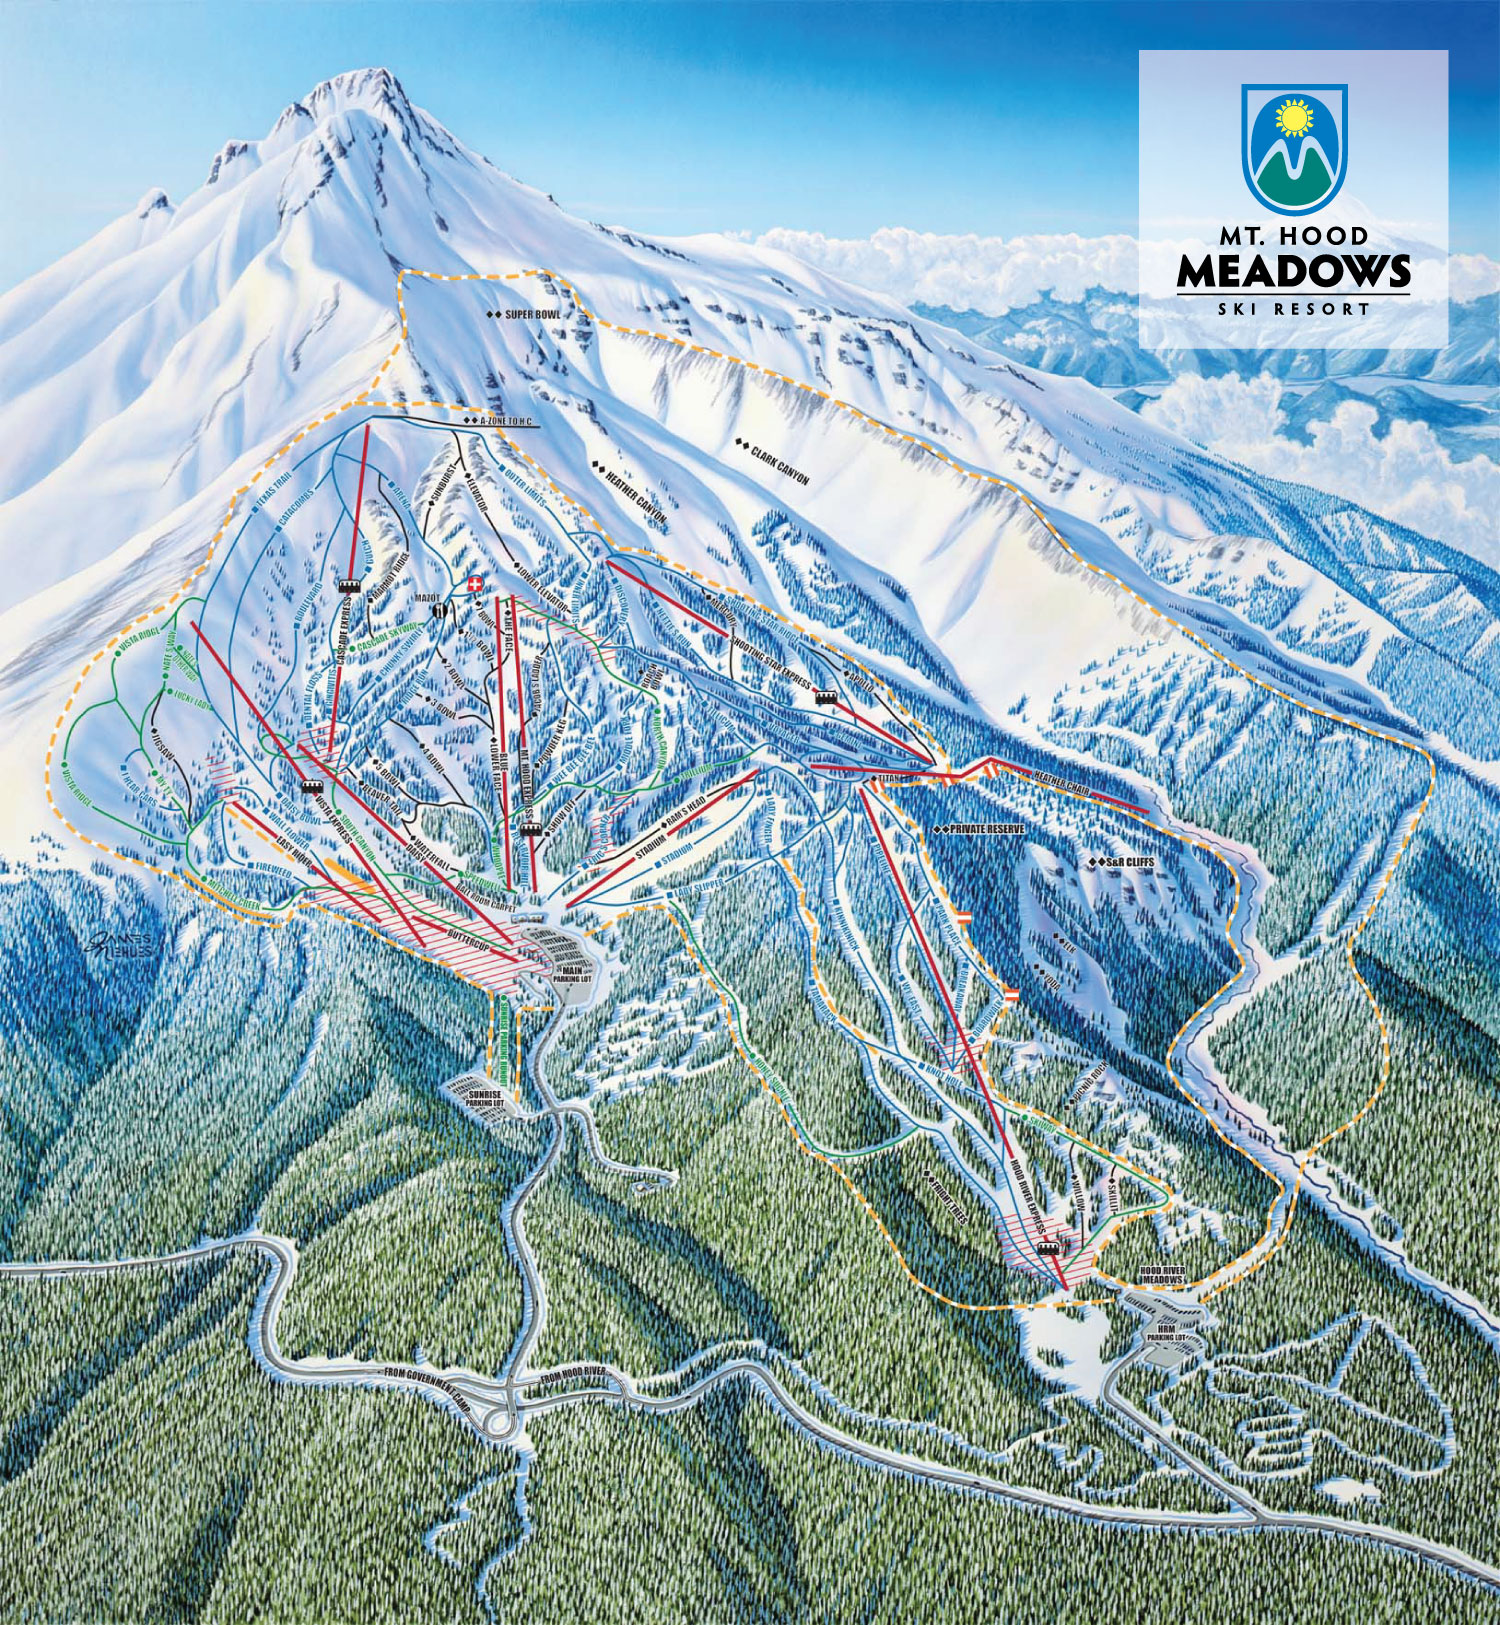 mt. hood meadows ski resort - skimap